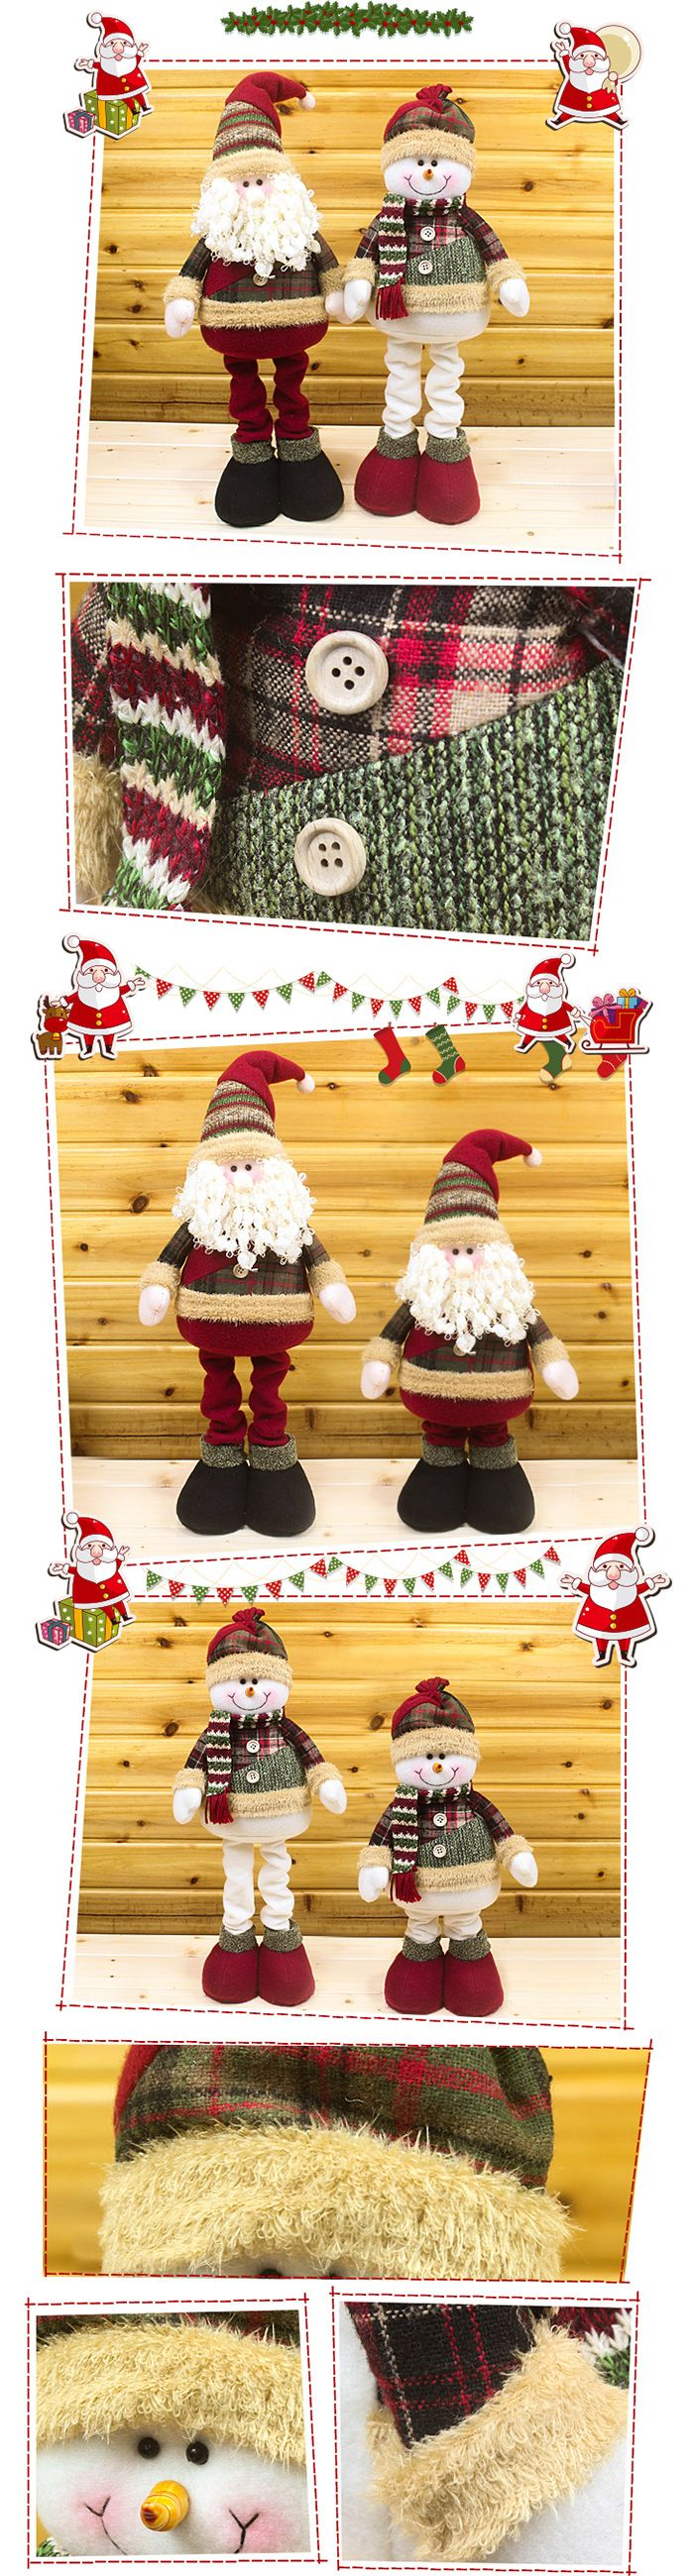 Winter Dress-up Snowman Santa Claus Stretchable Cloth Doll